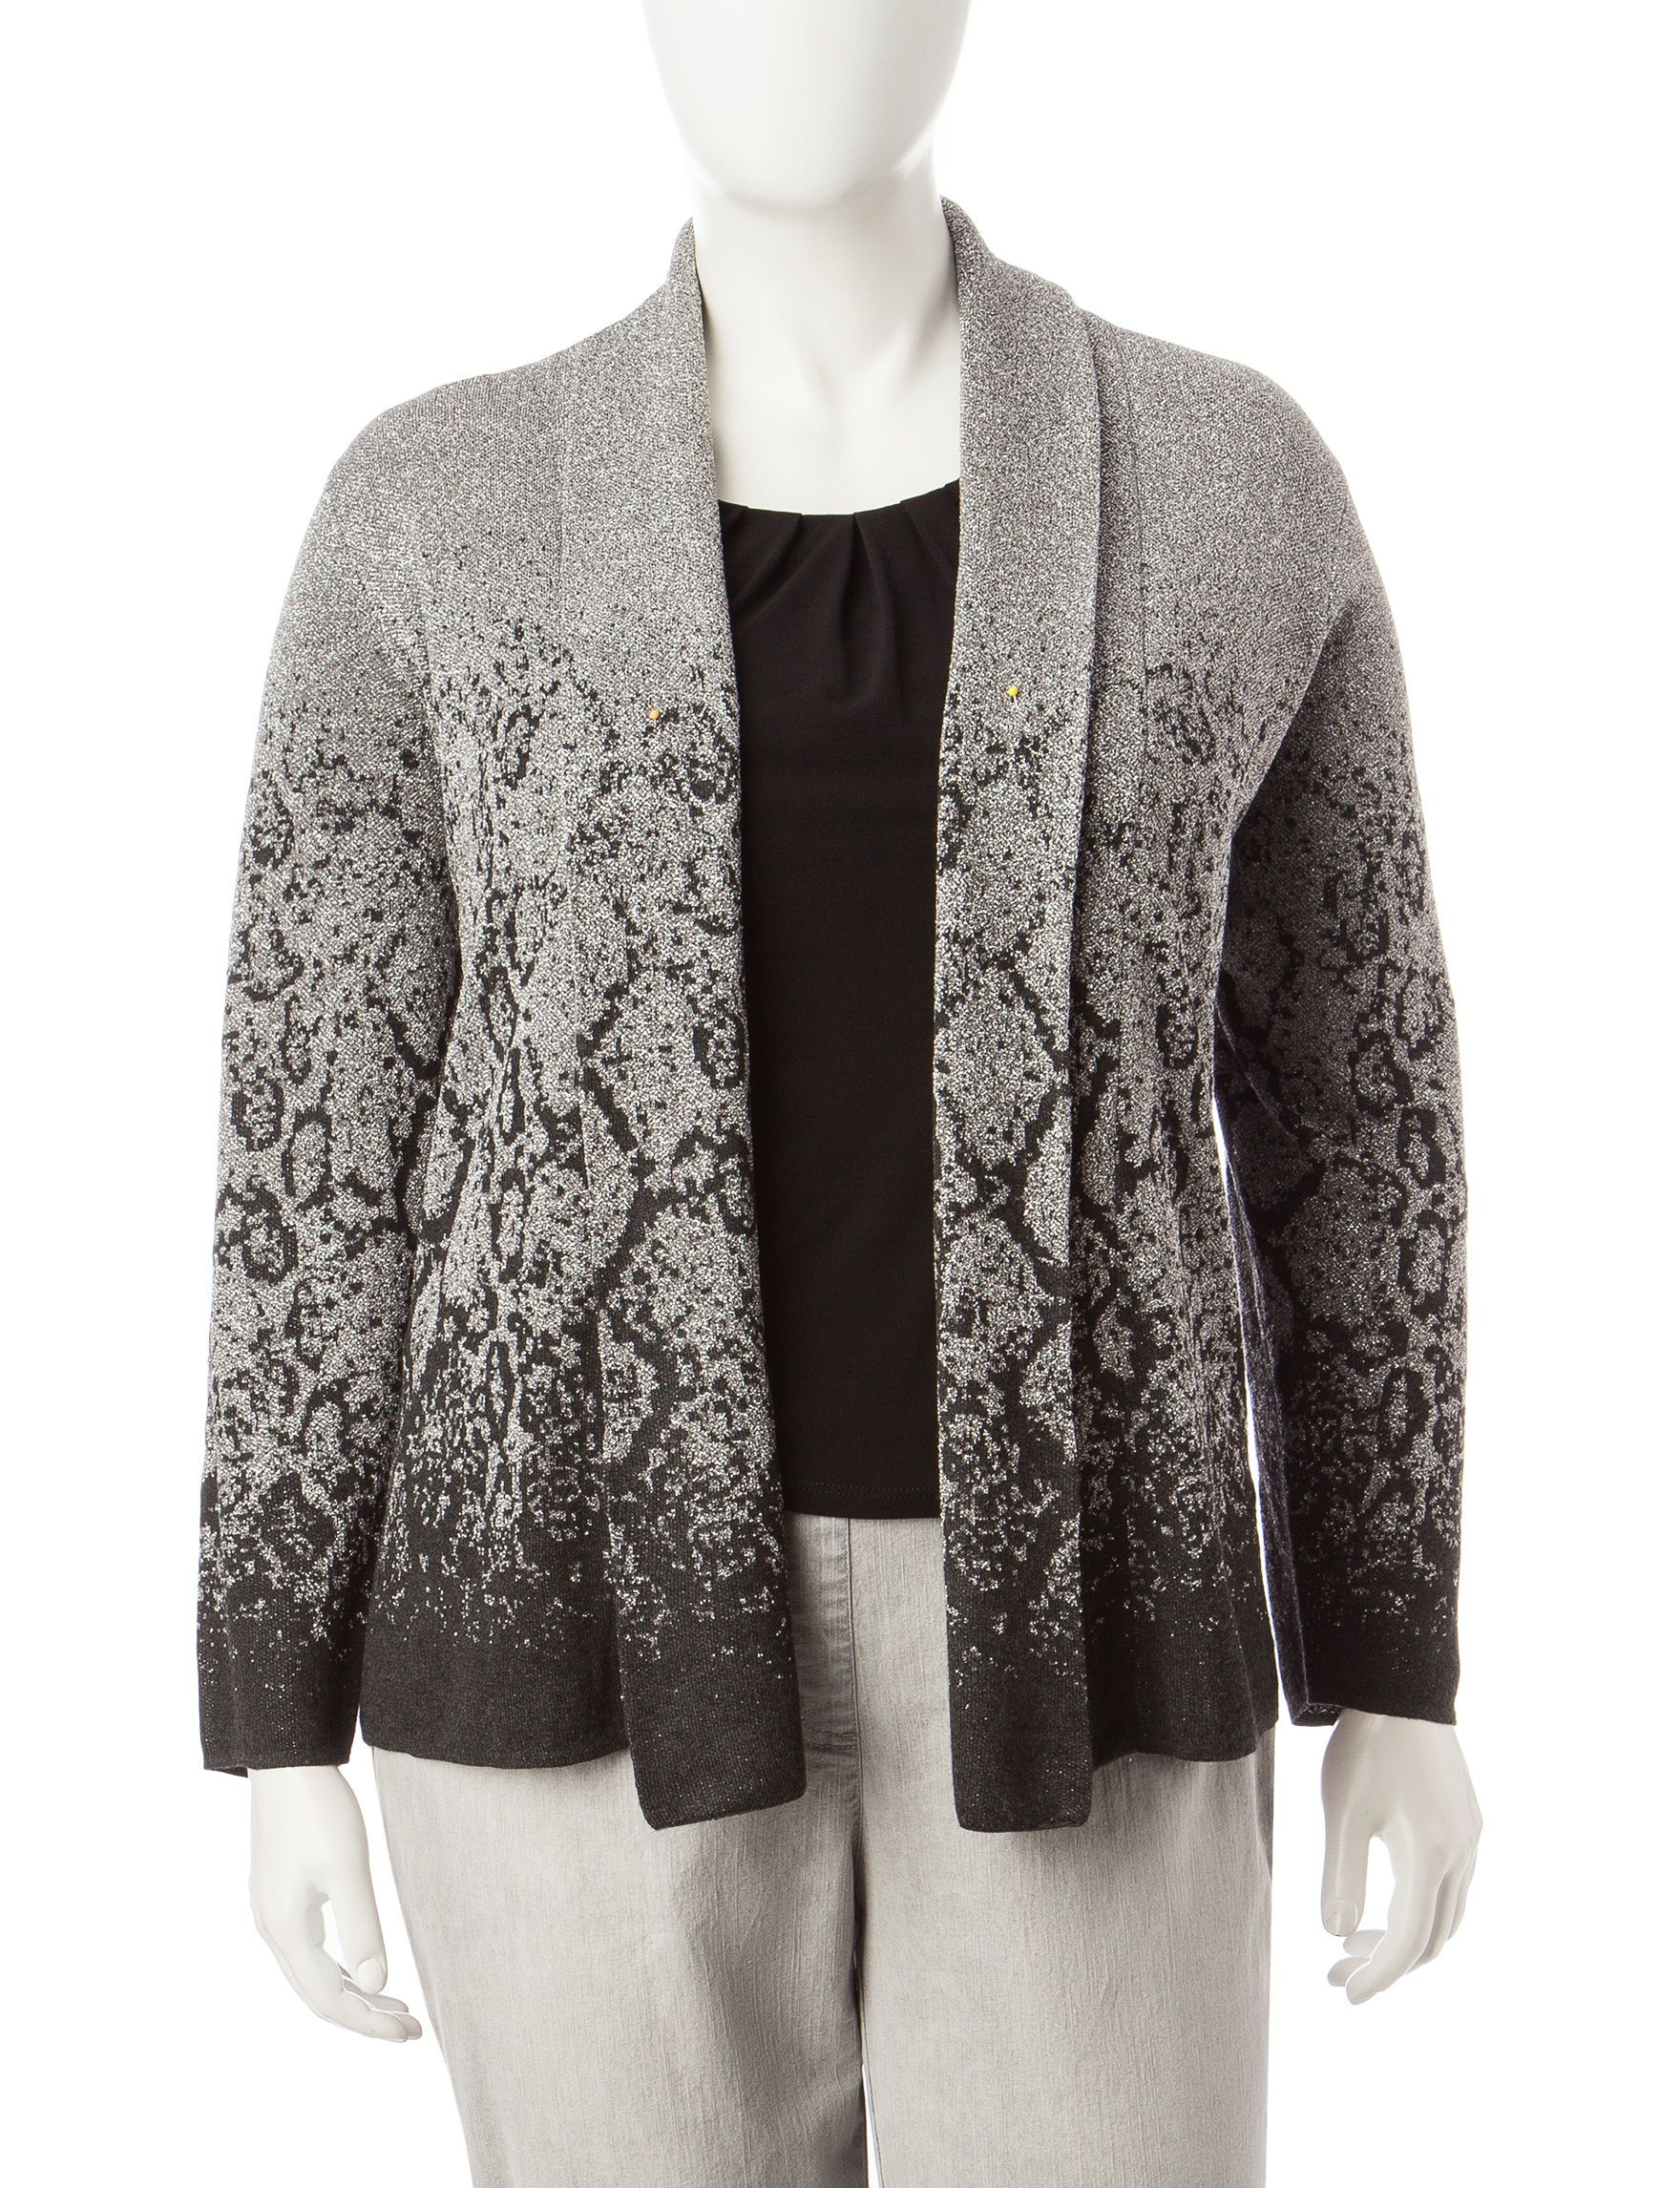 9.99 Ruby Road Plus-size Ombre Snake Print Cardigan | Mom options ...